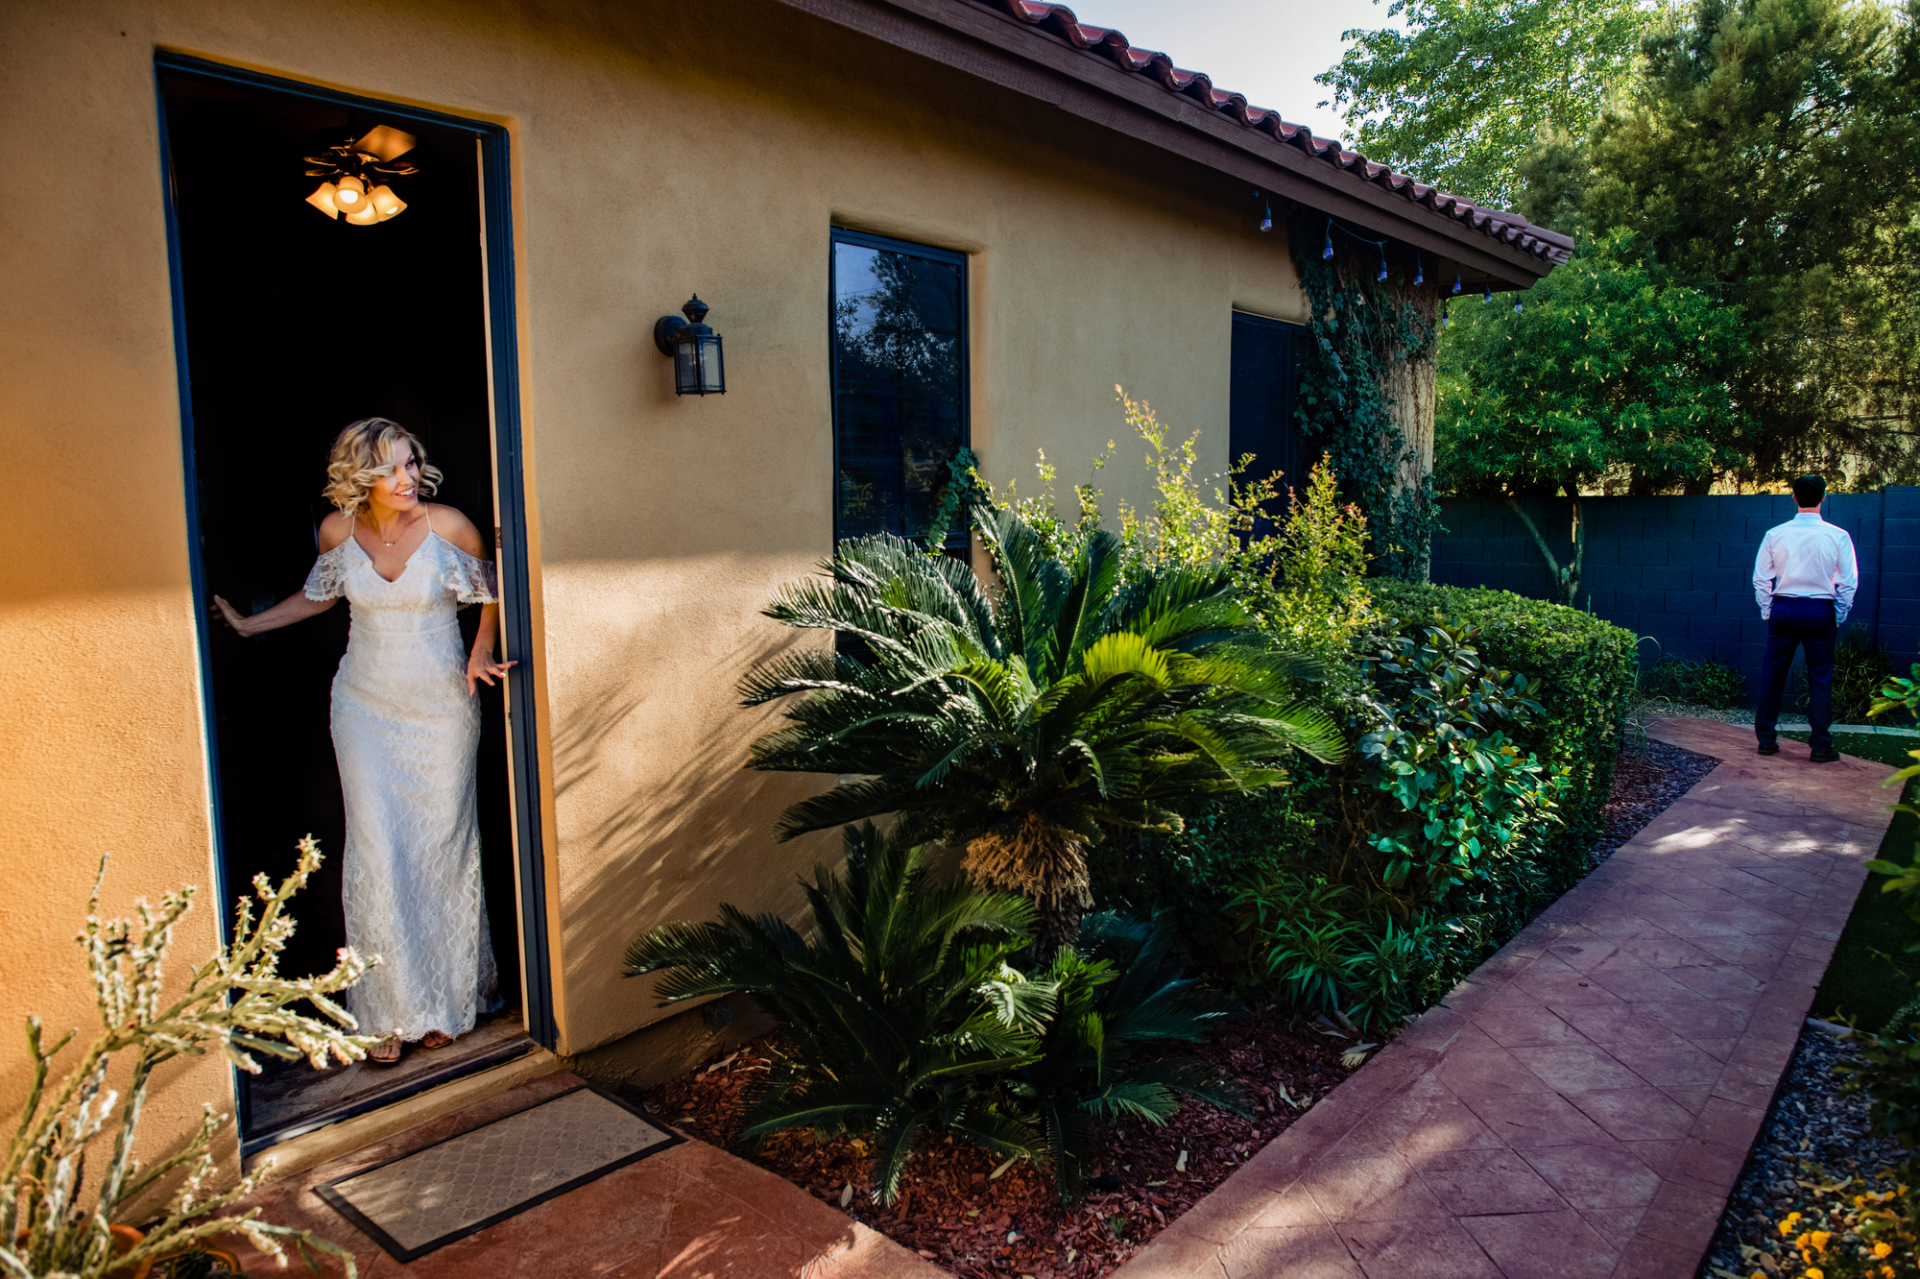 Airbnb in Phoenix, AZ Wedding Photographer | The bride peaks around the corner, as her groom waits patiently with his back turned